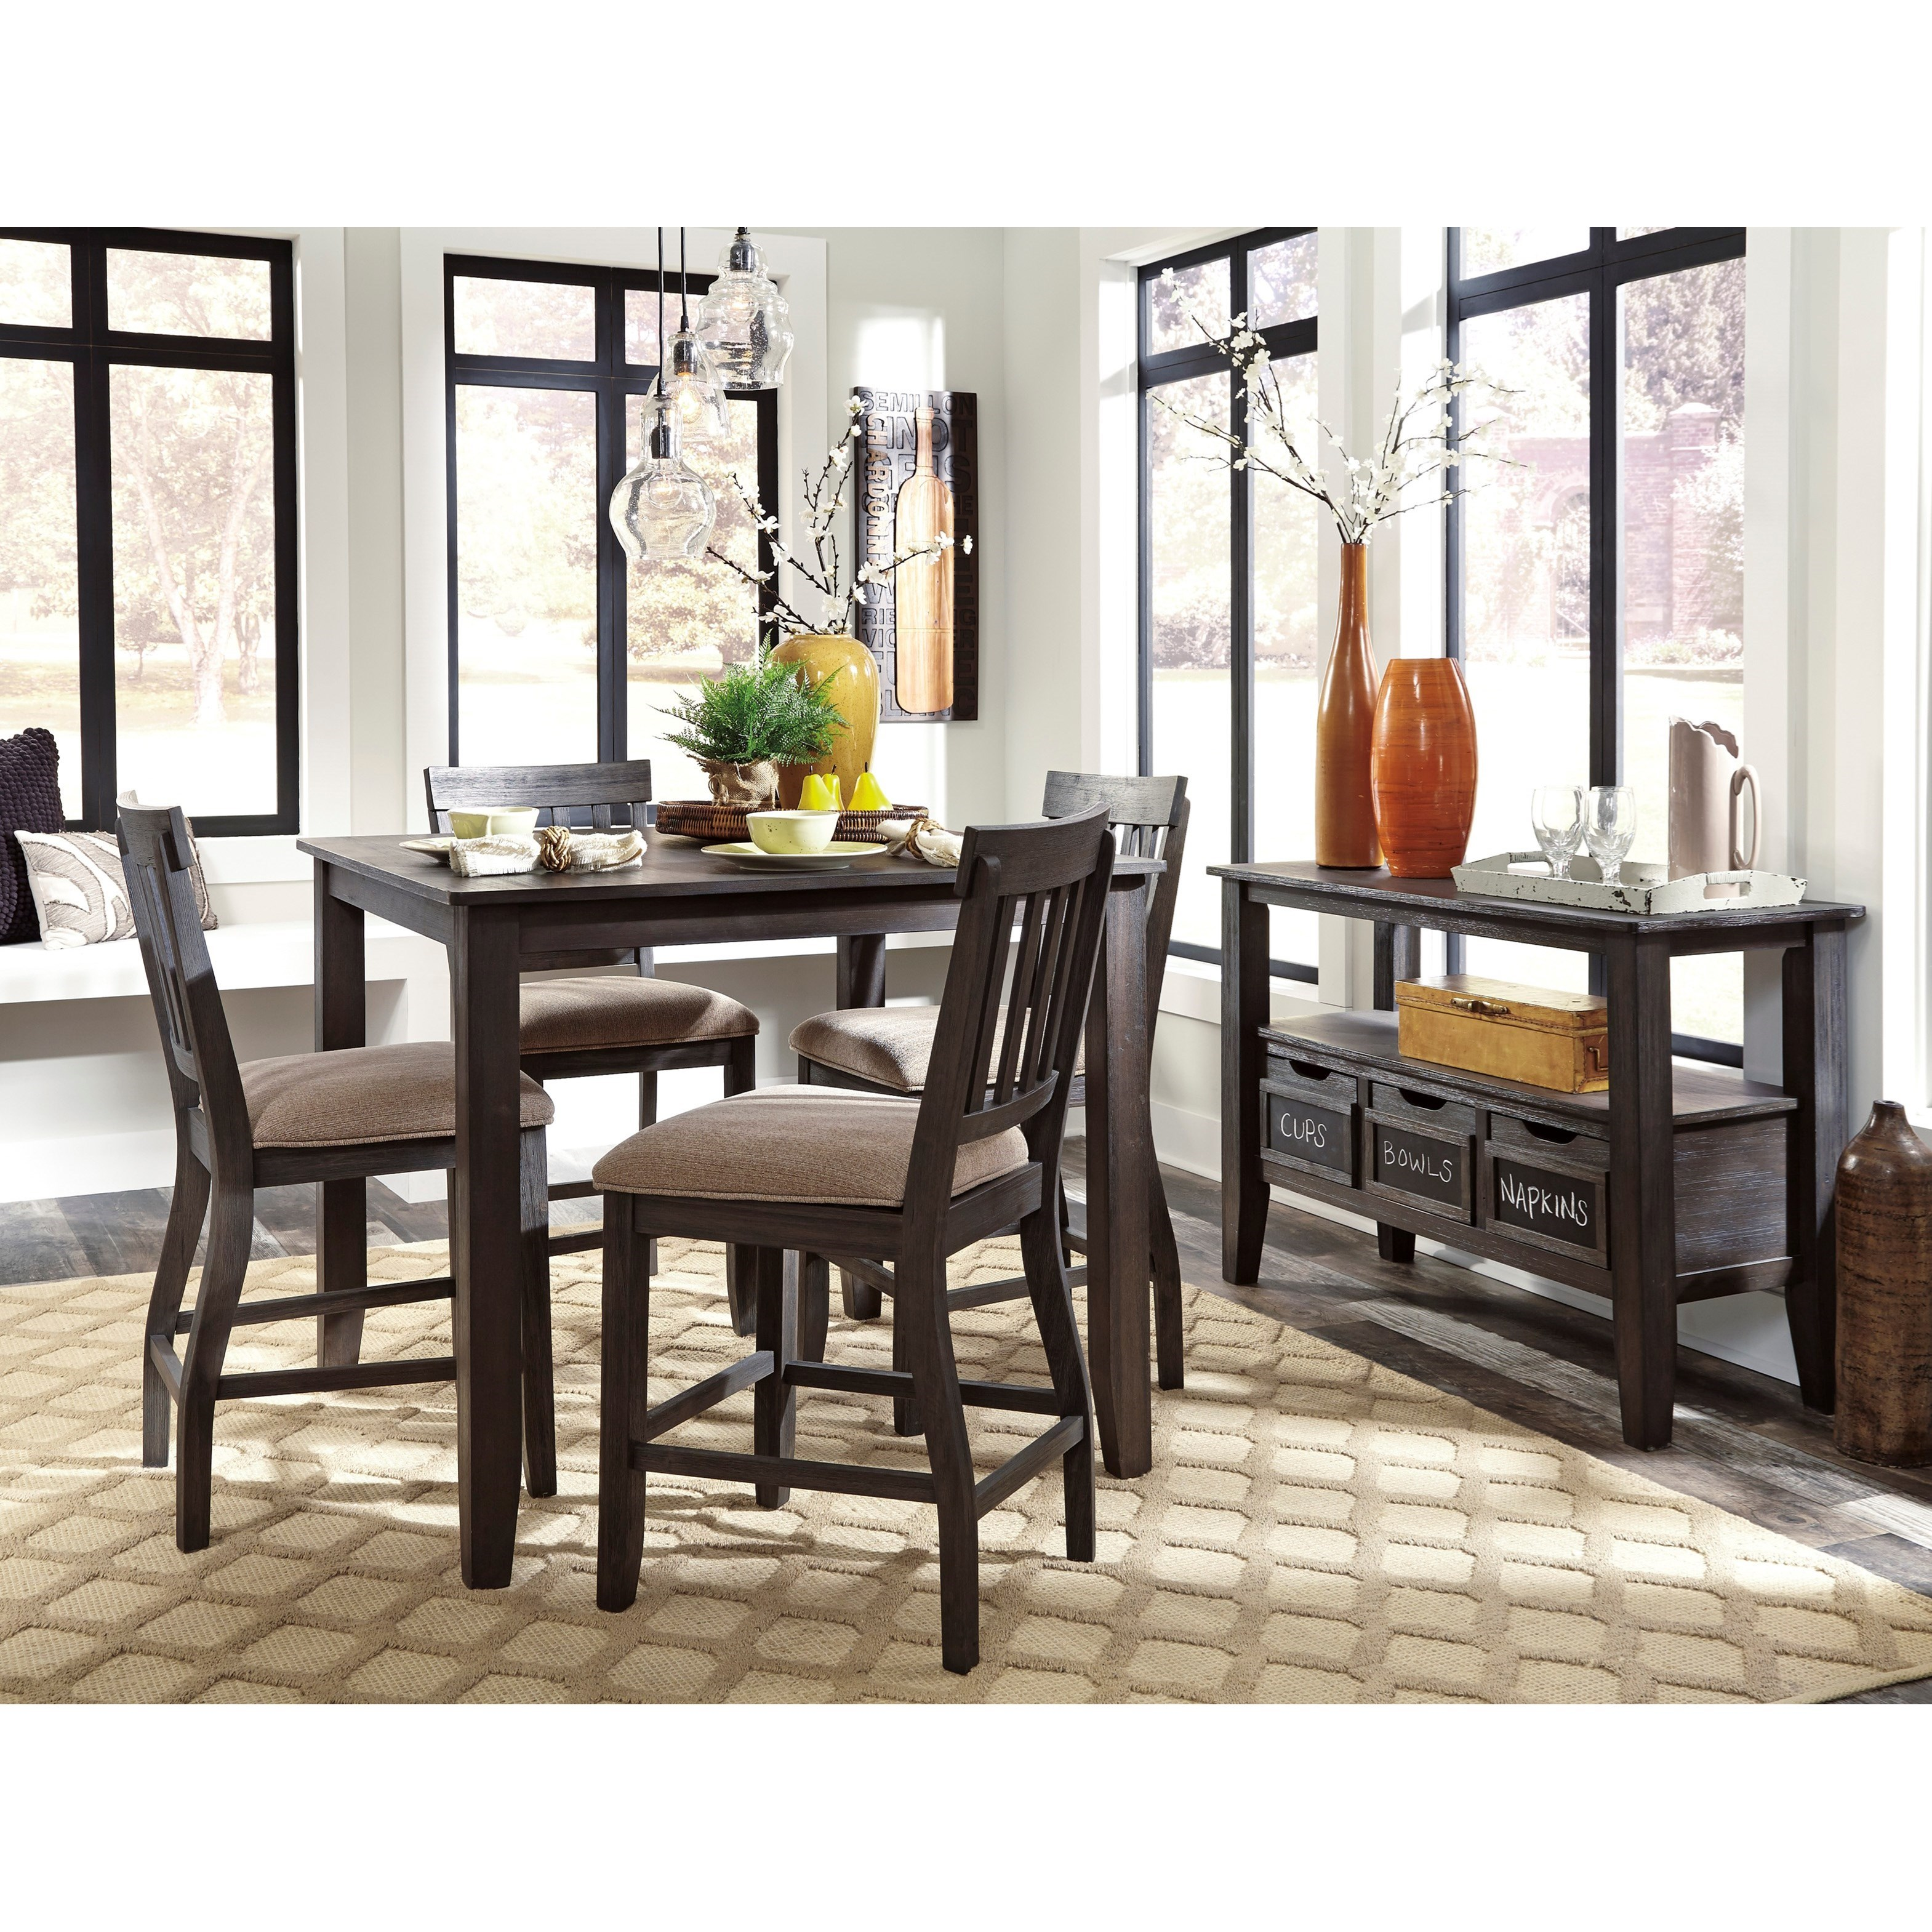 Signature design by ashley dresbar casual dining room for Casual dining room